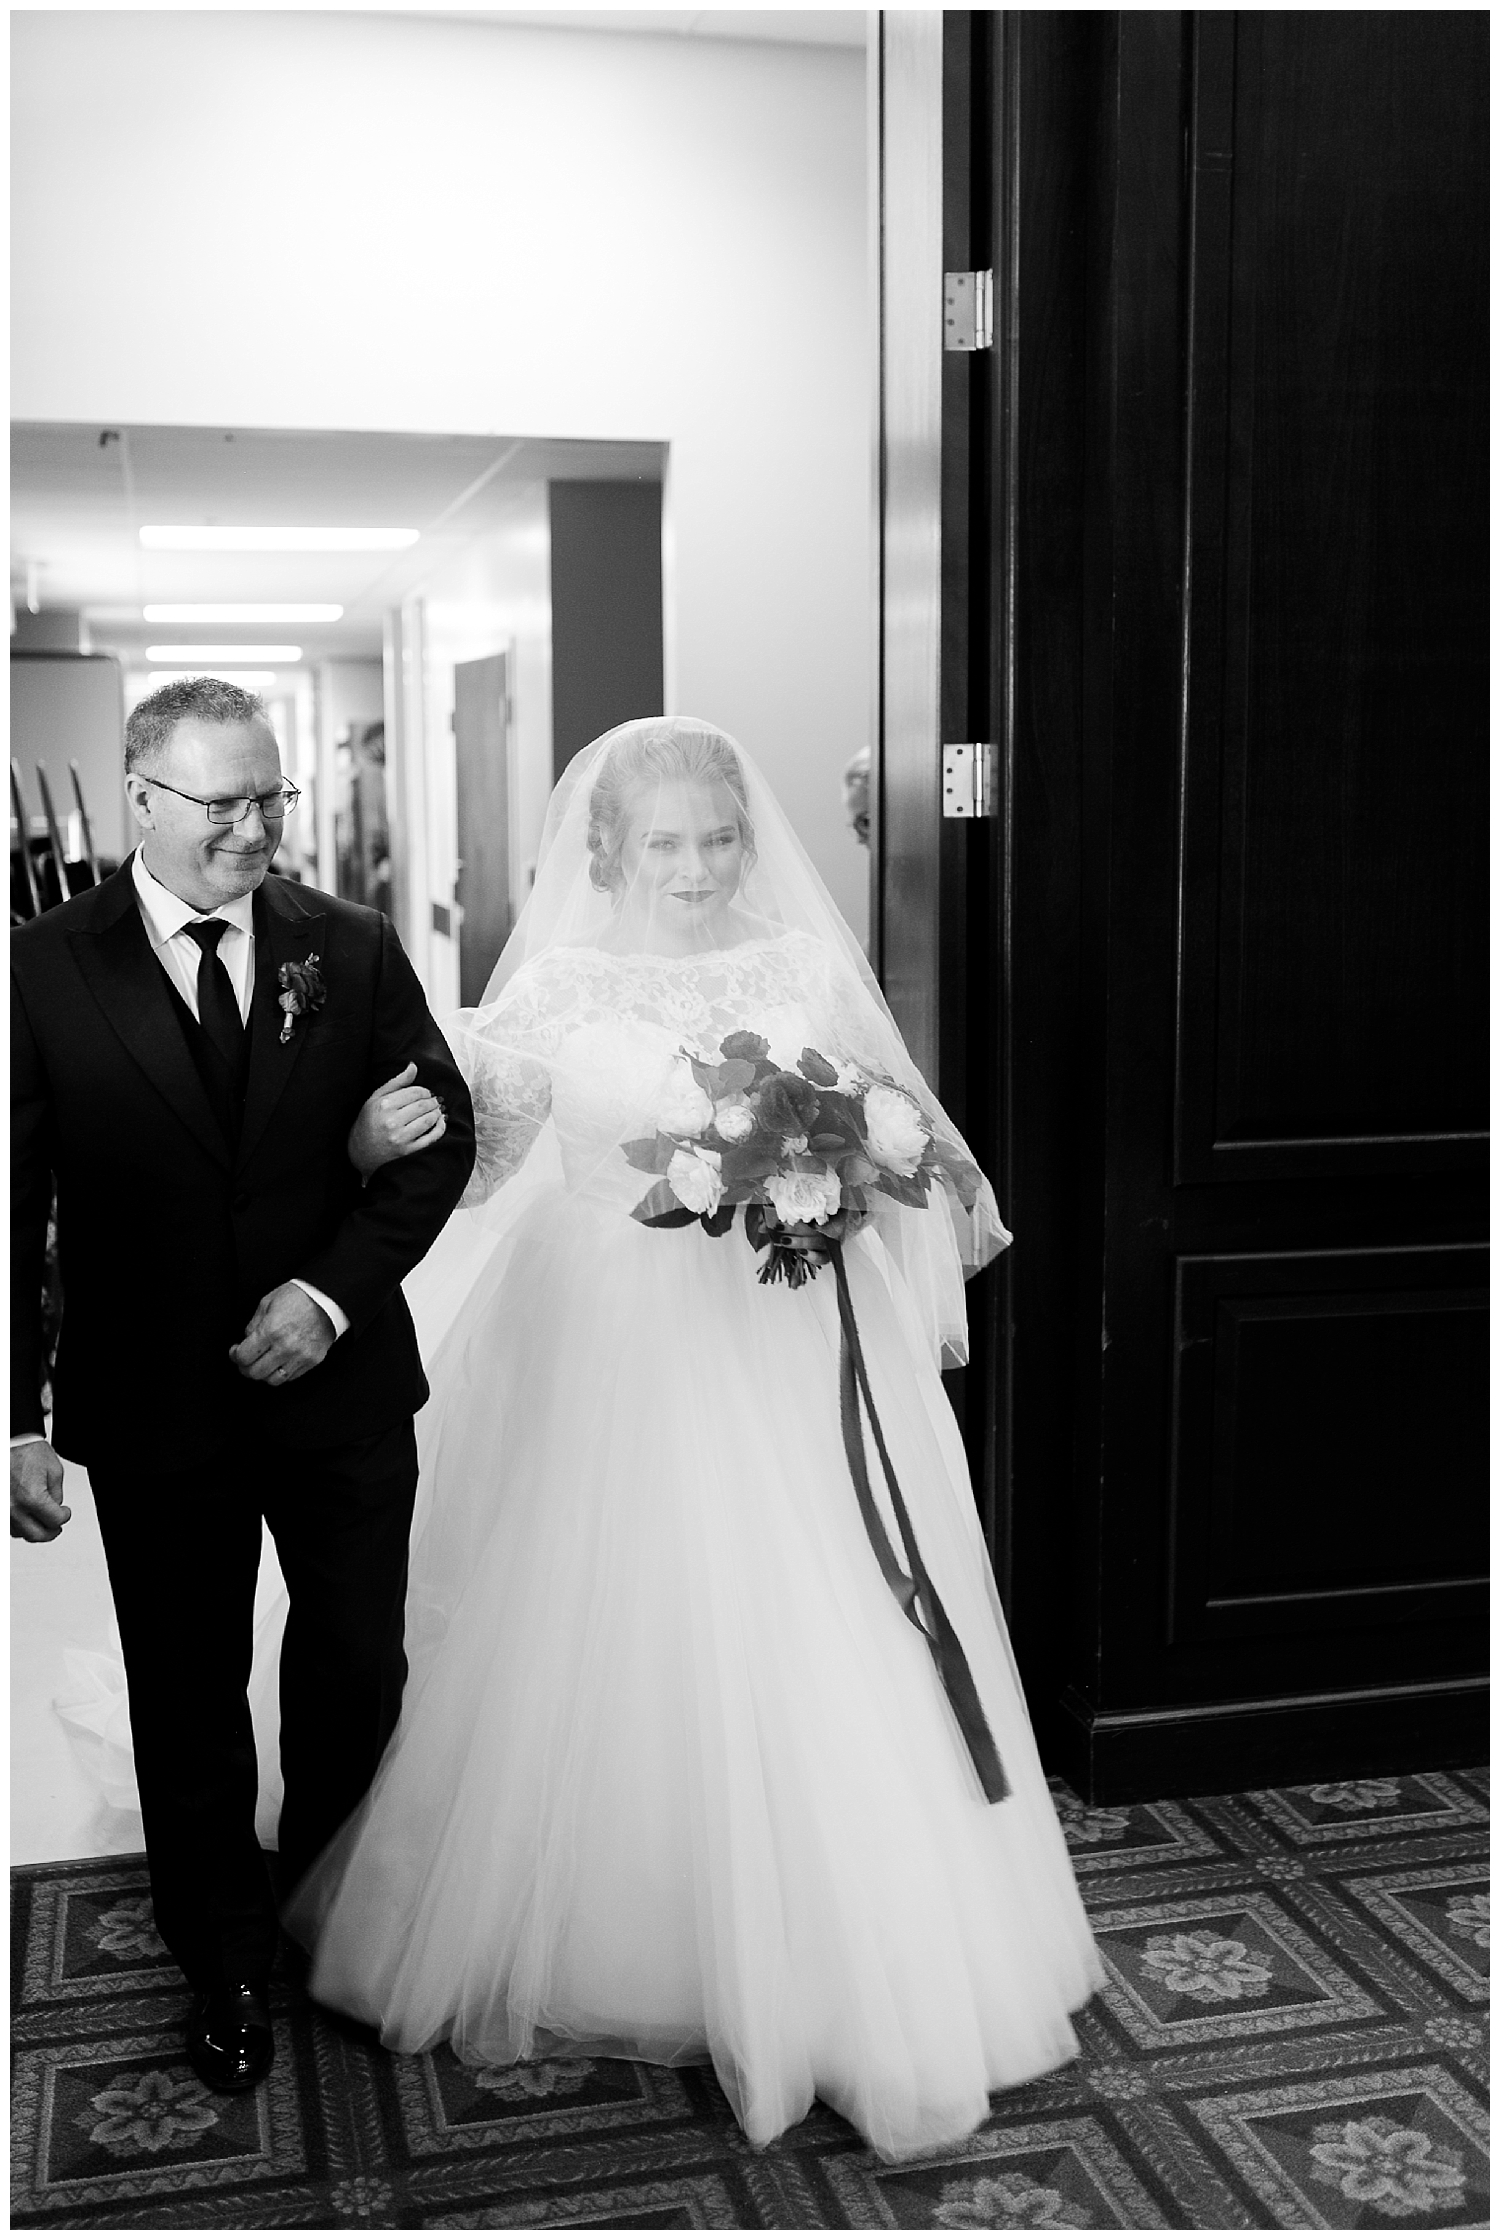 Louie and Kori will soon be leaving KY. As a last homage to the state where they met and fell in love, Kori walked down the aisle to  My Old Kentucky Home.